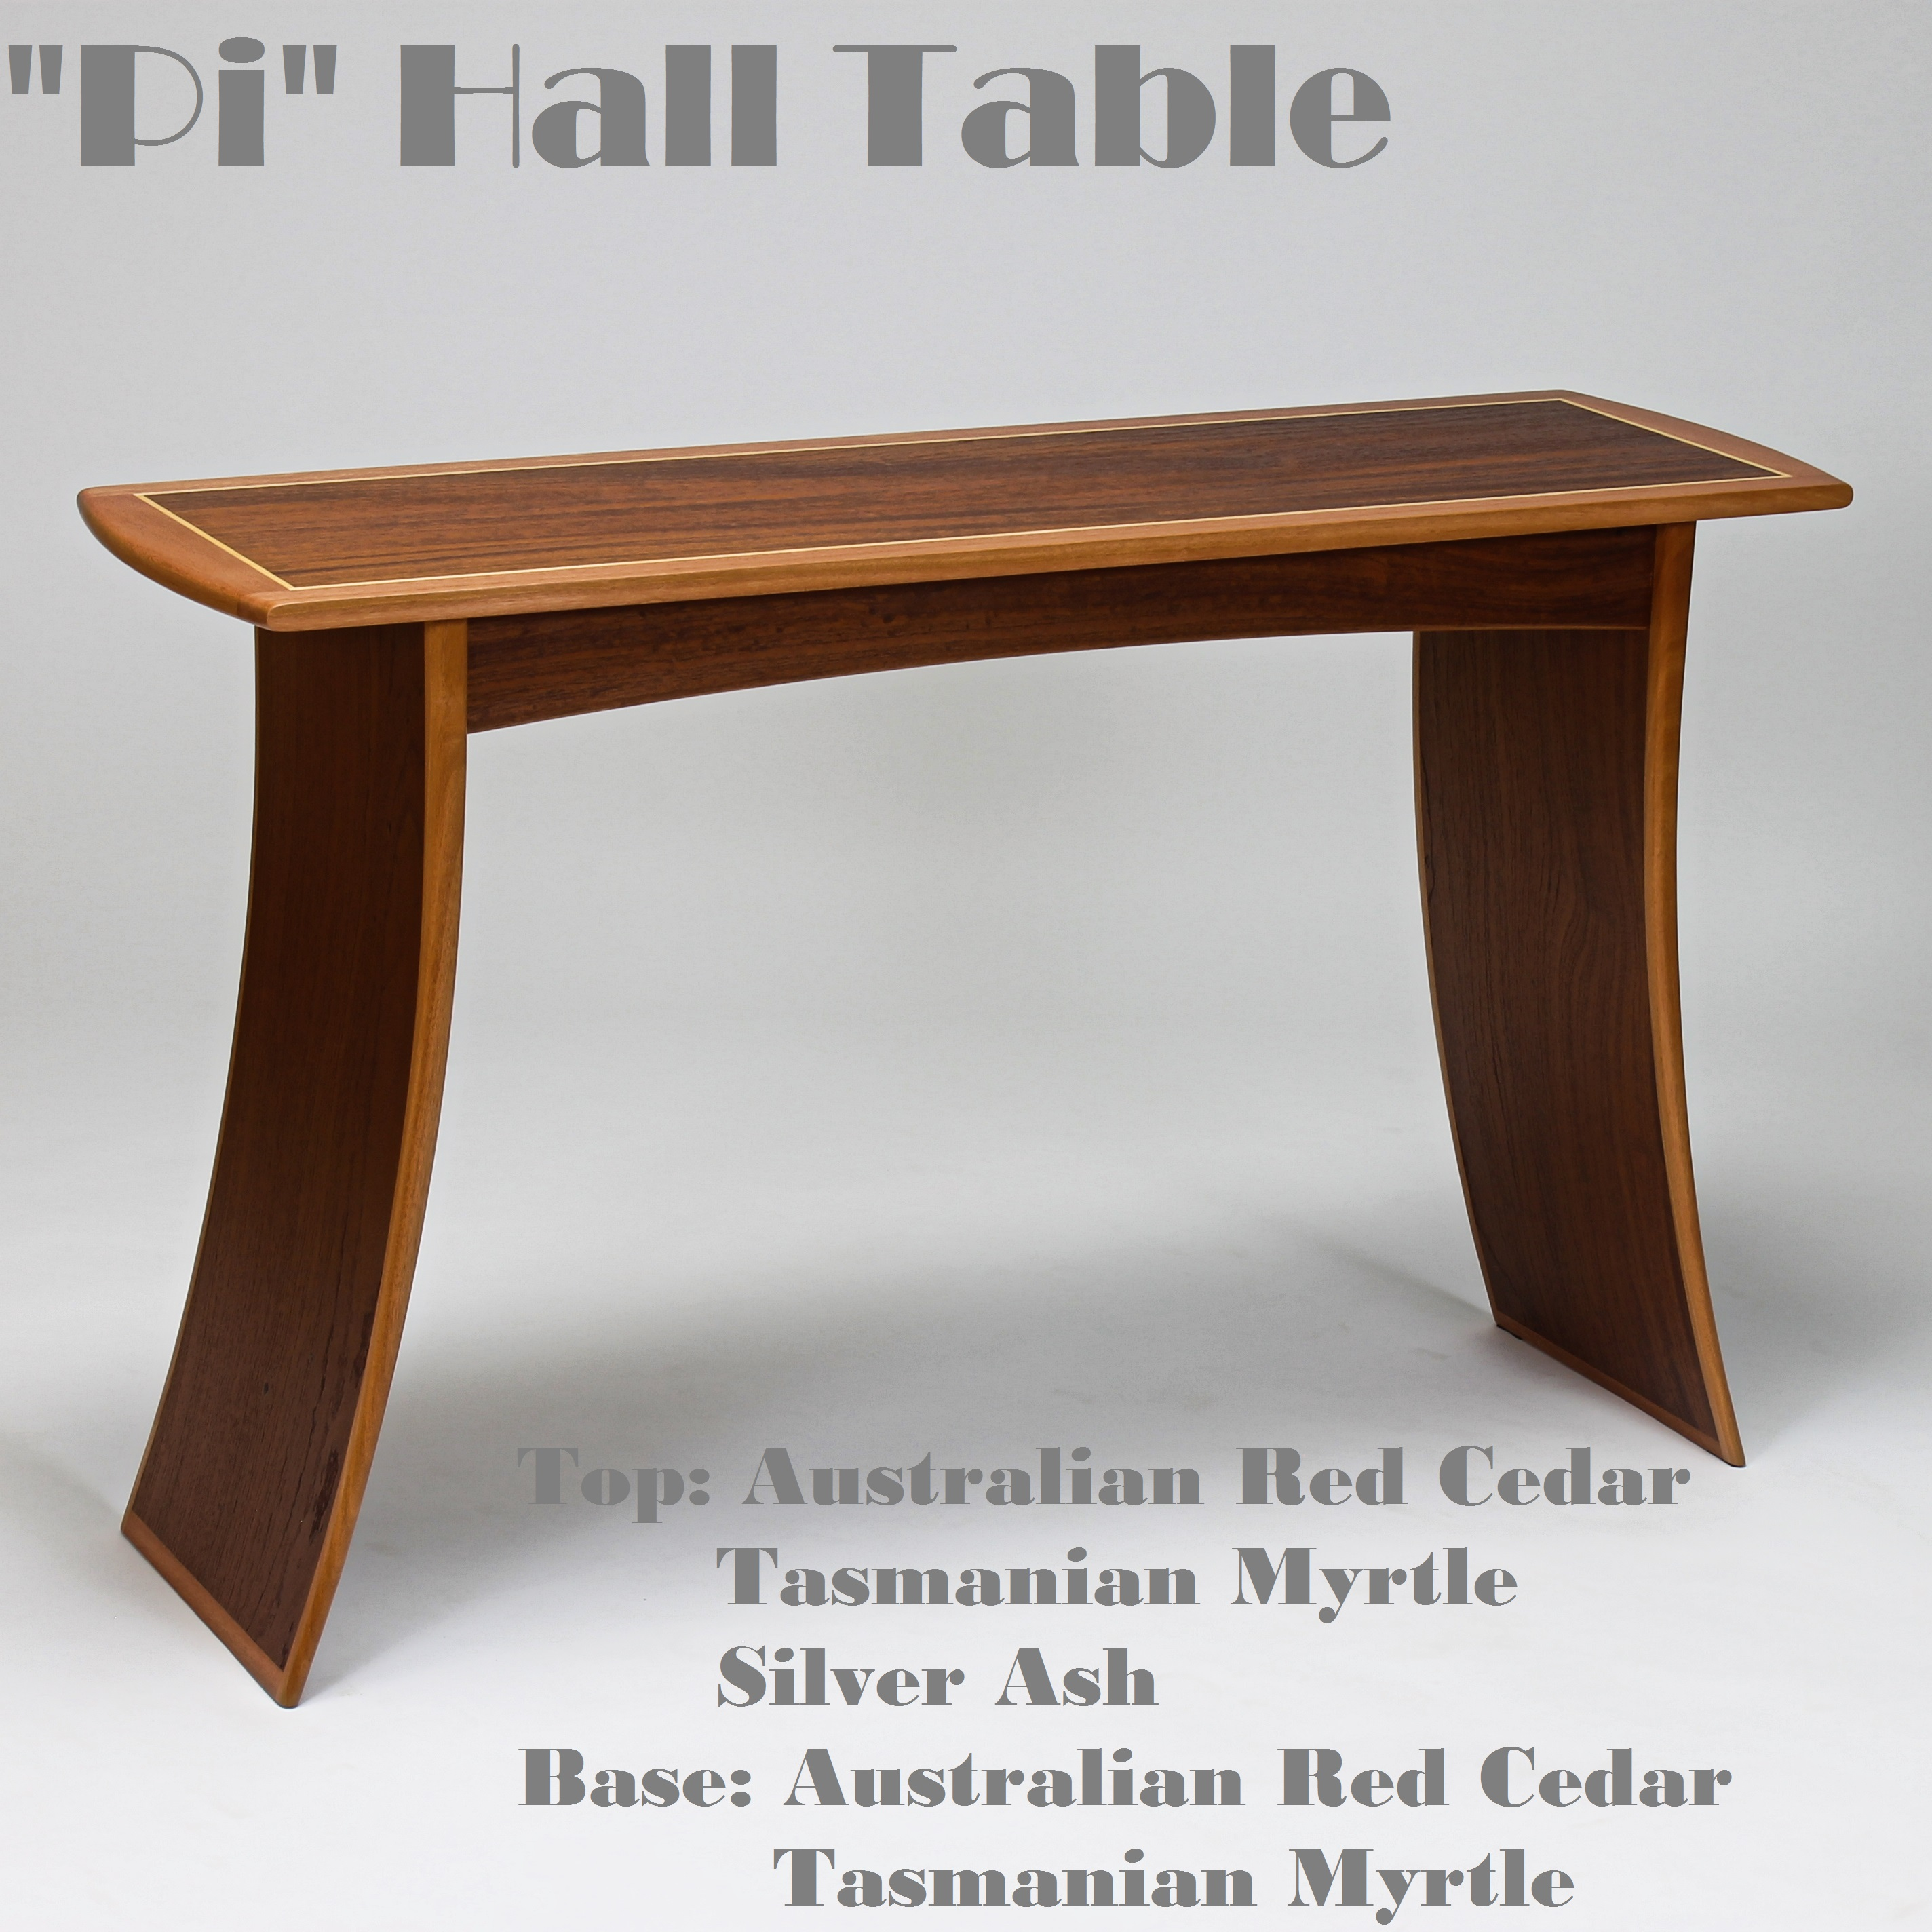 Pi Hall Table Website 2